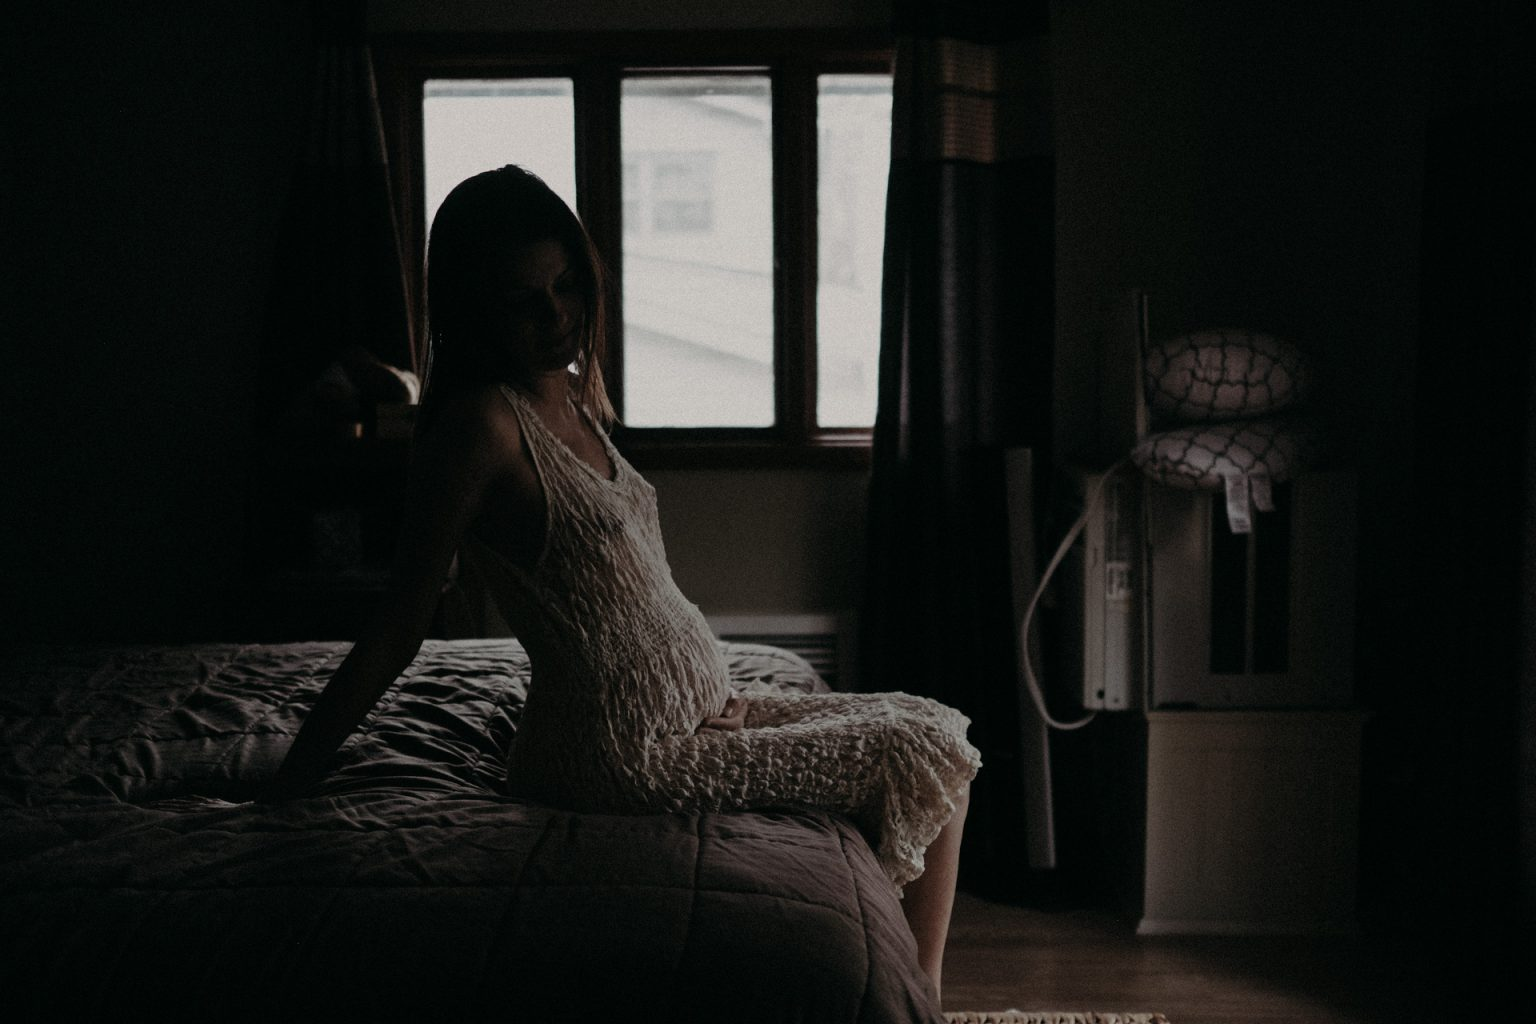 pregnant woman in lace by window